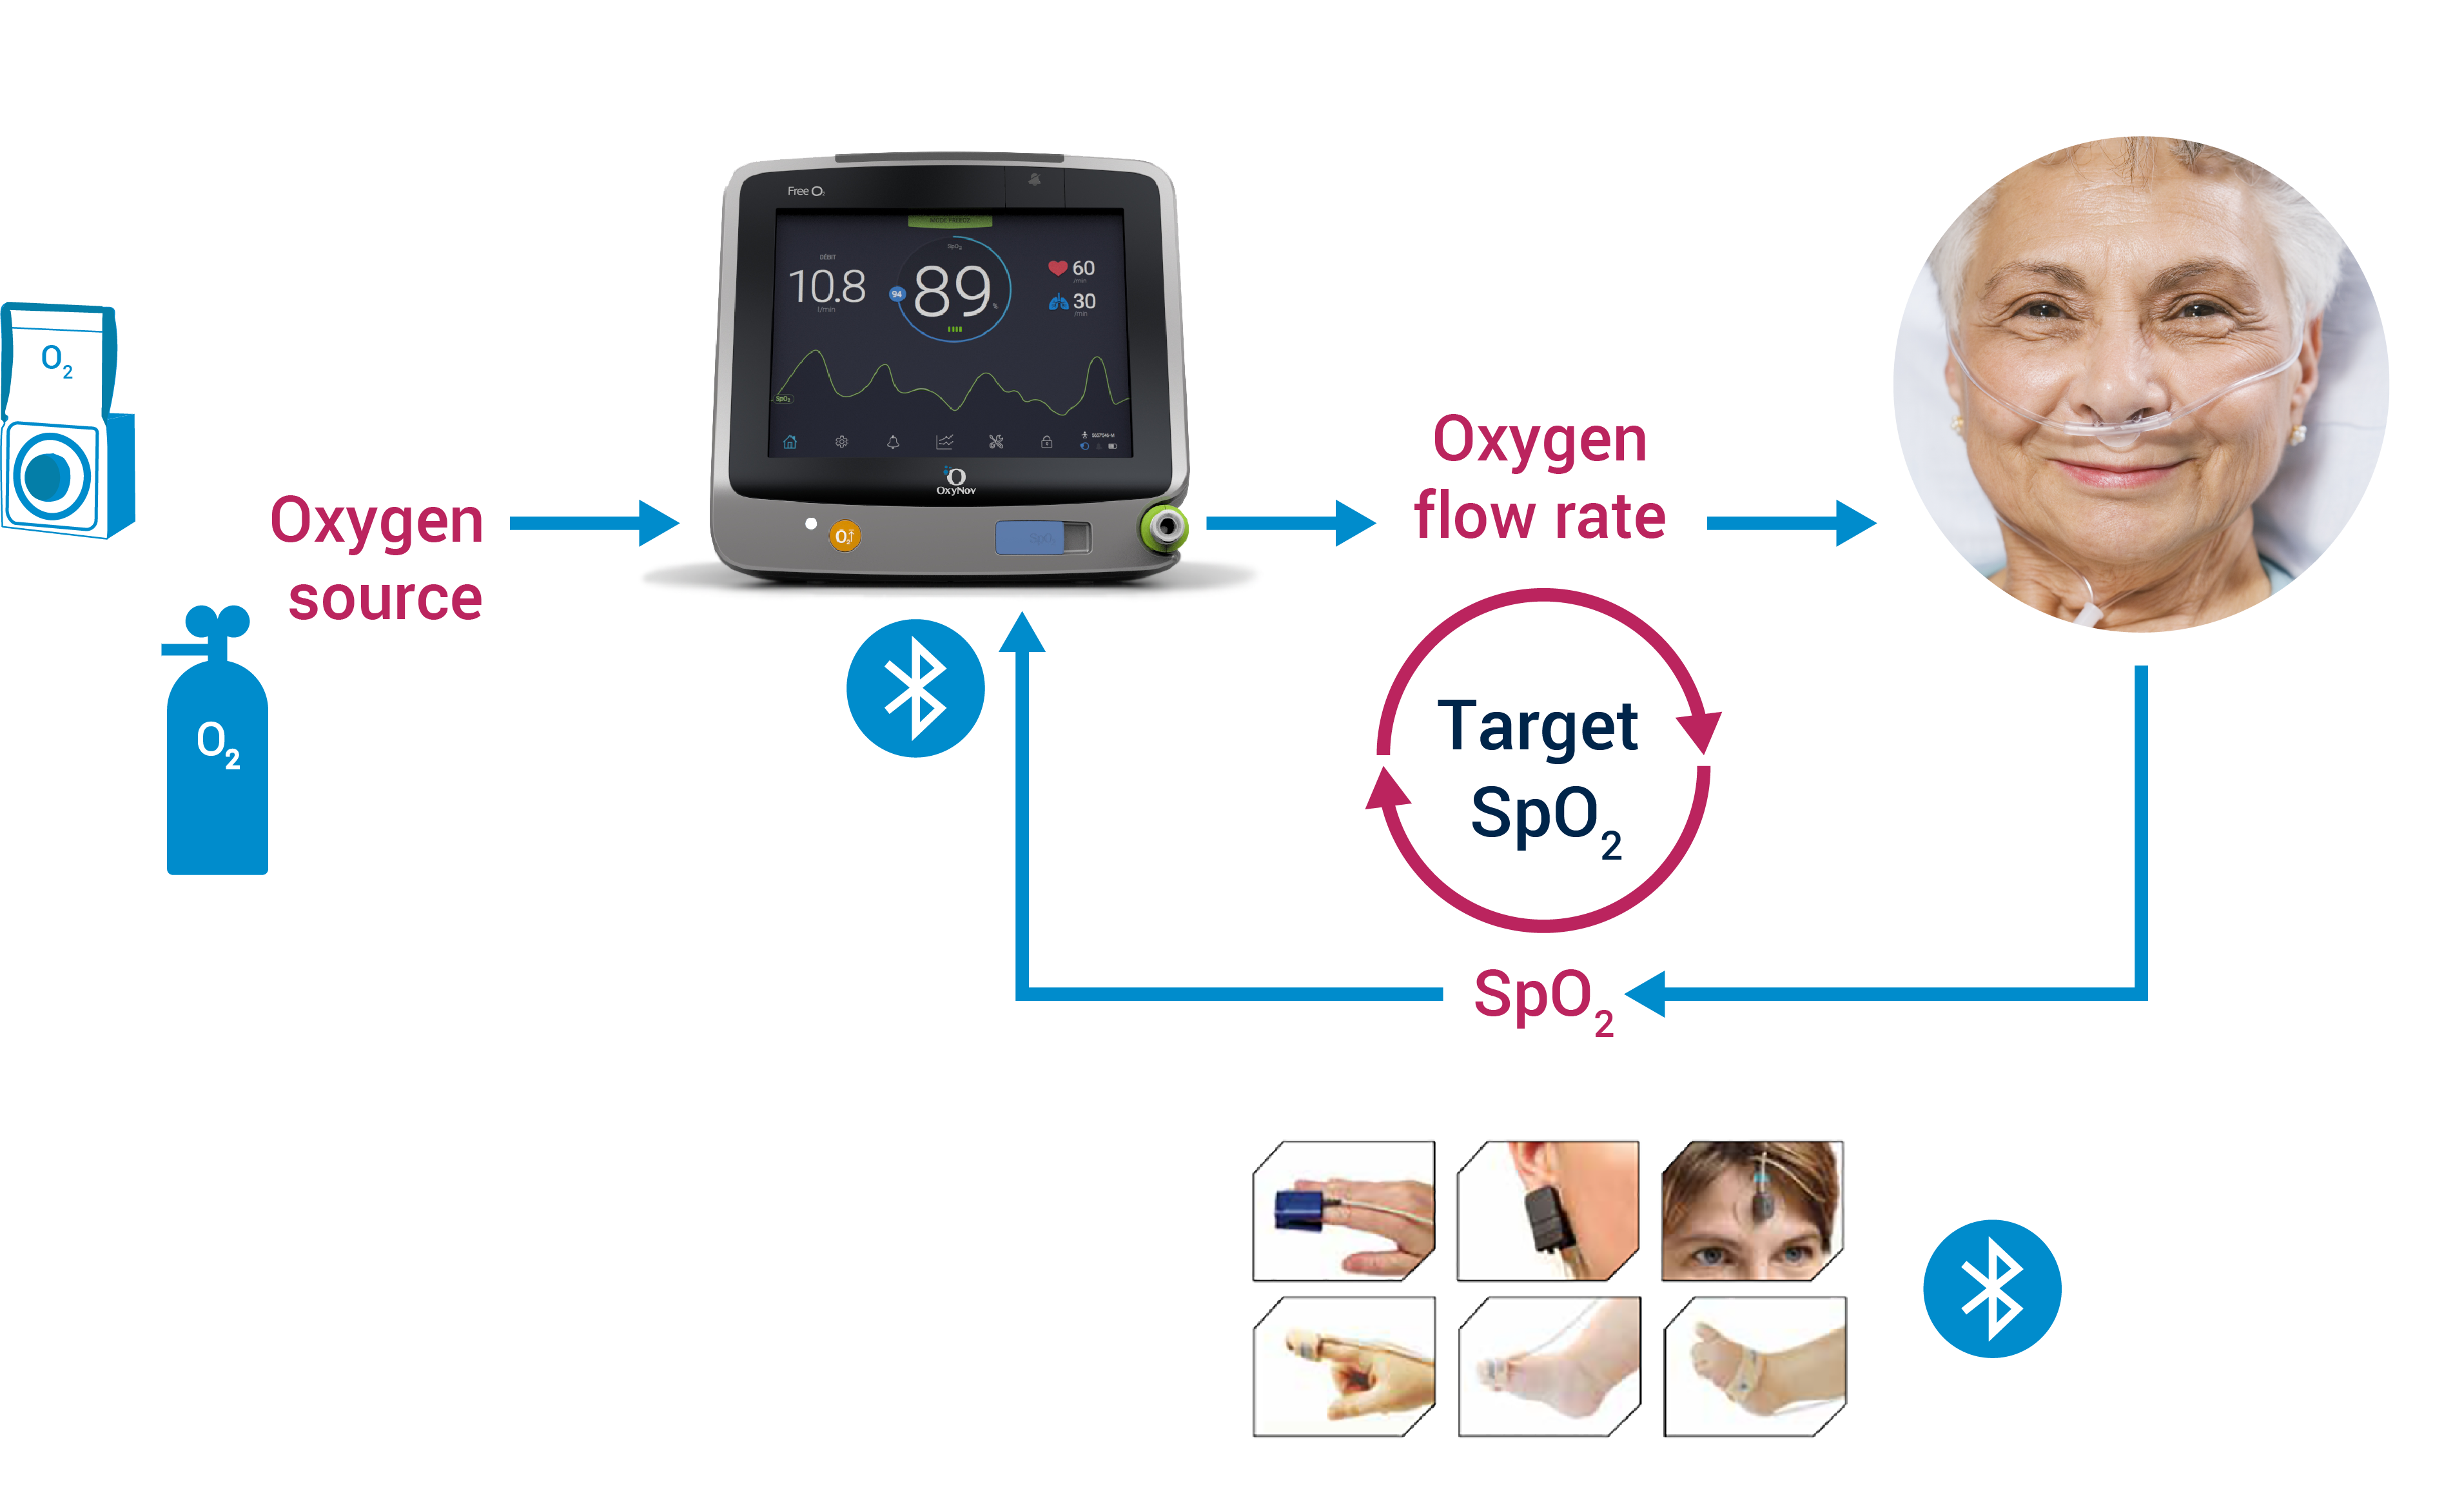 automated oxygen therapy